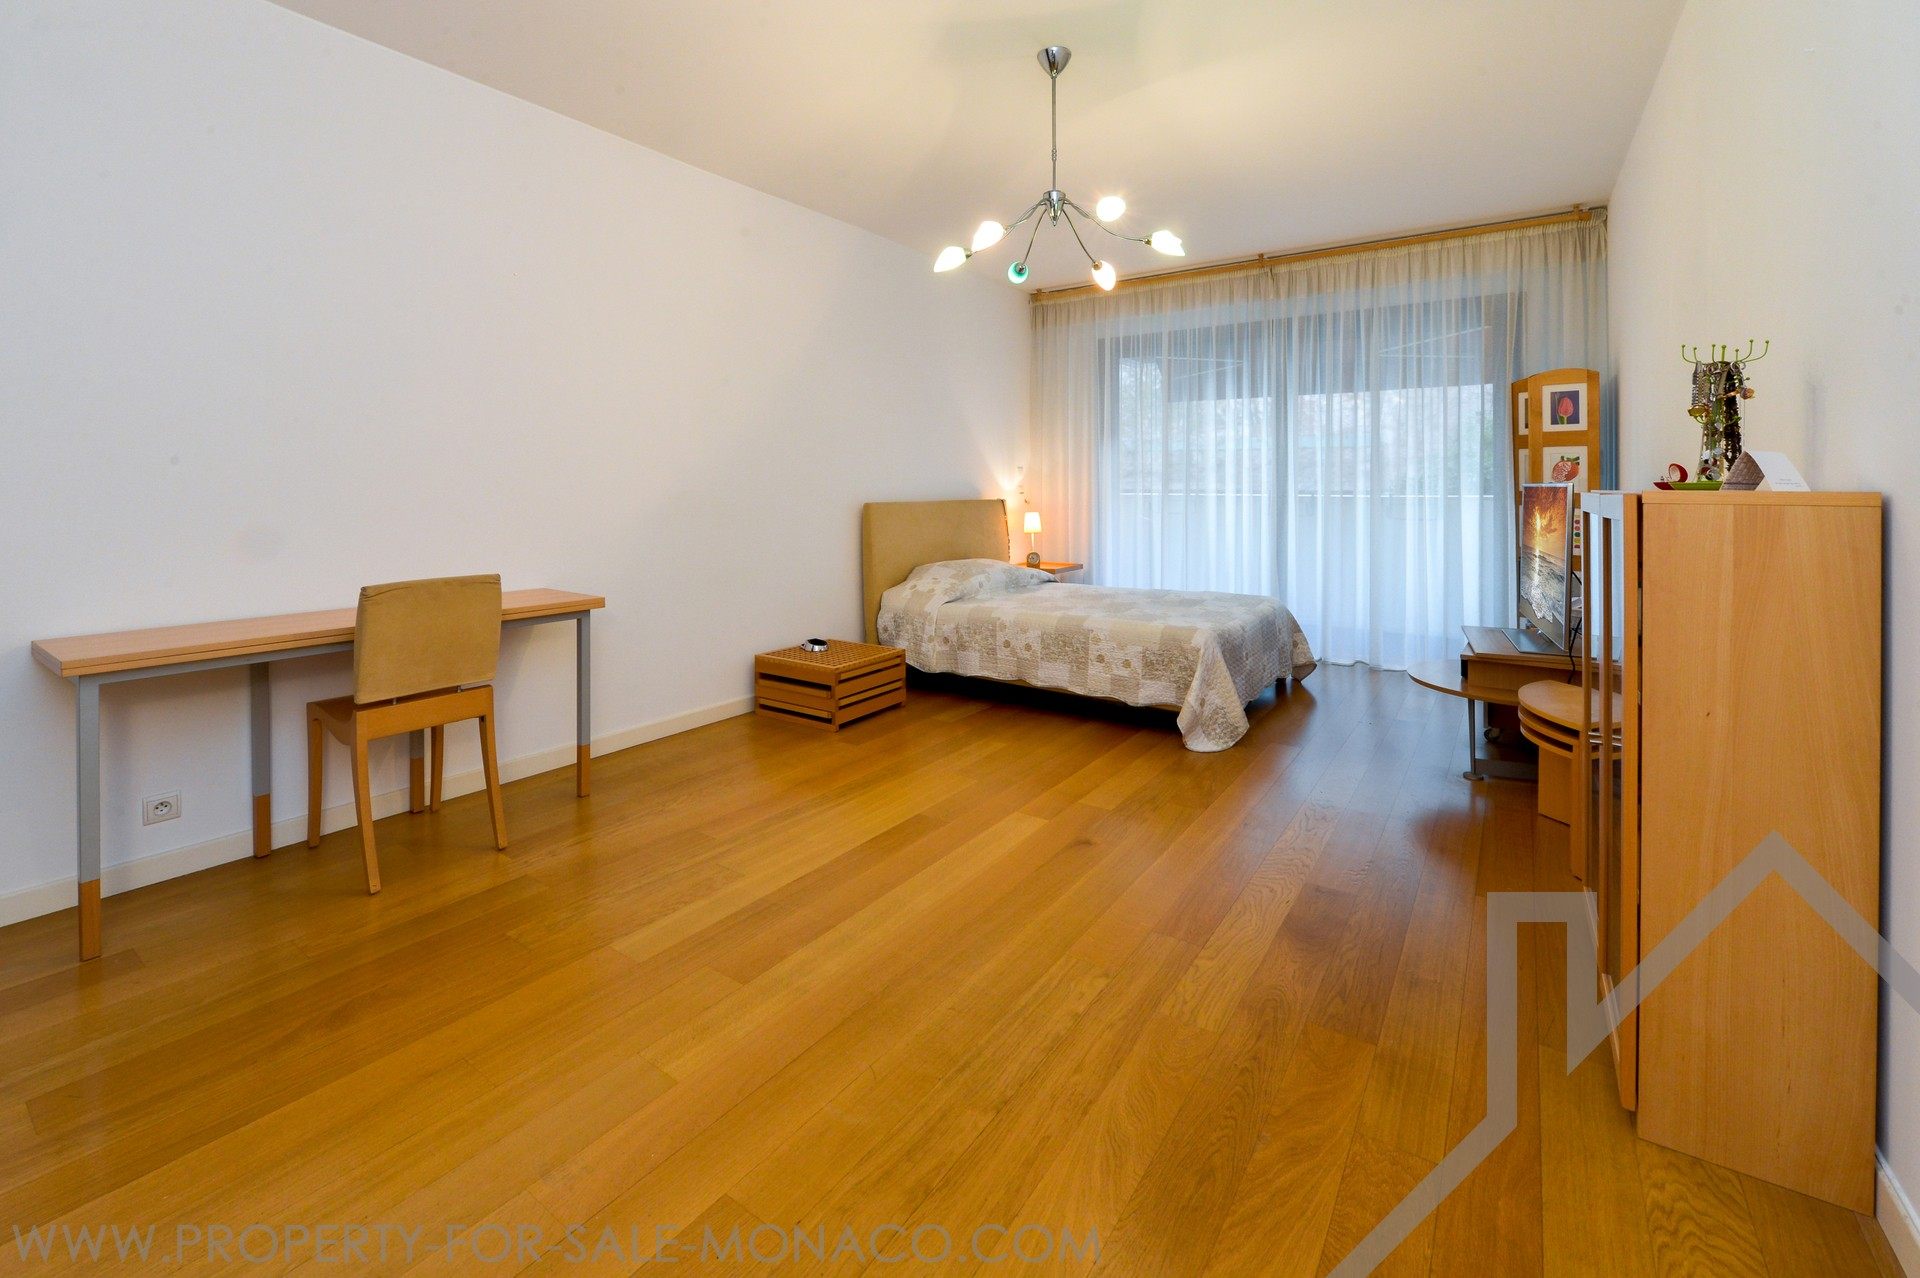 SPACIOUS ONE-ROOM APARTMENT TO SALE - CARRE D'OR - Properties for sale in Monaco